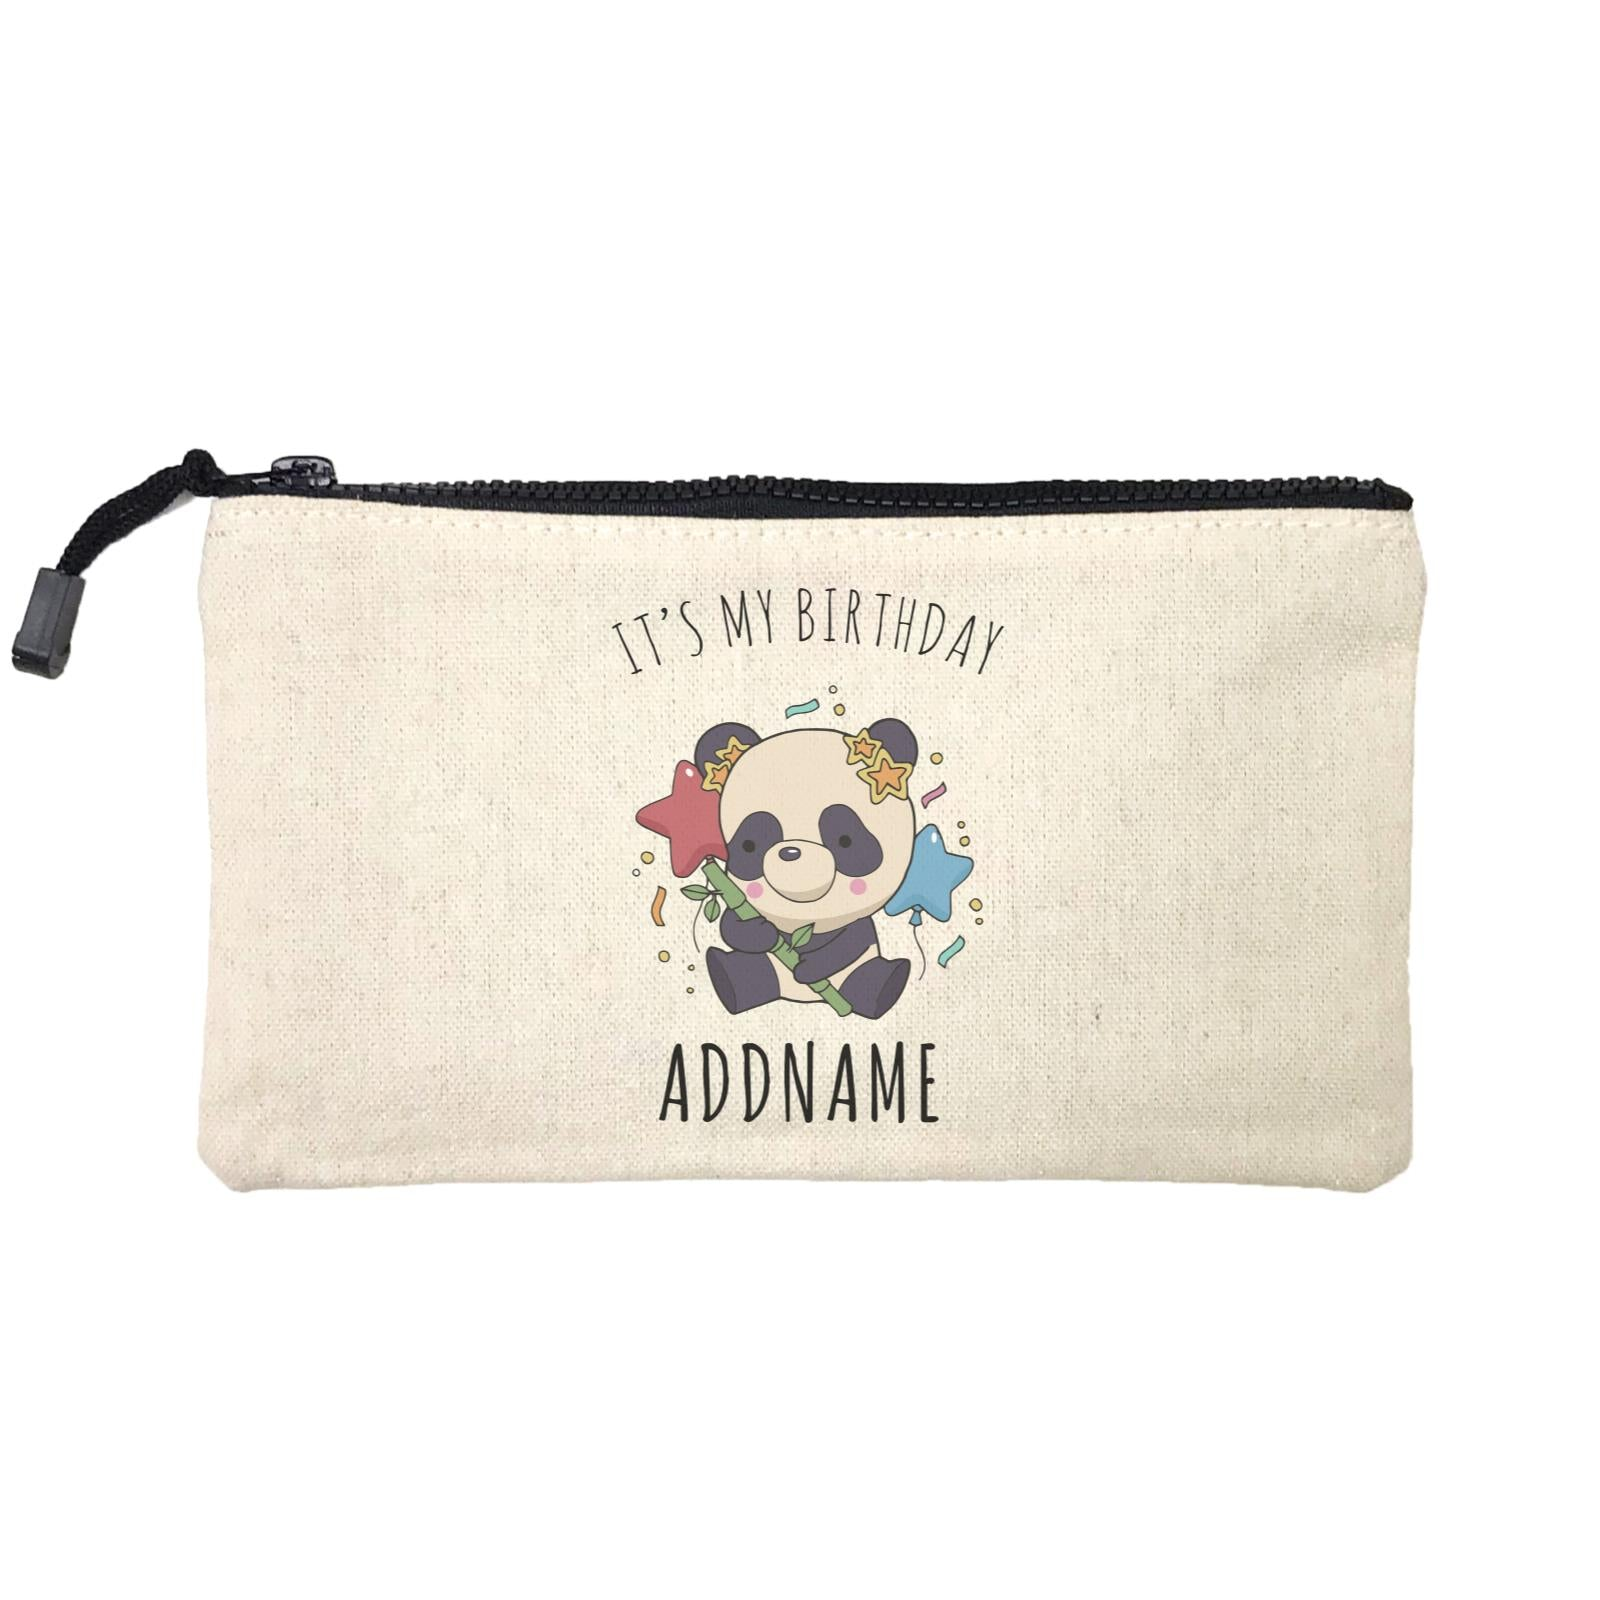 Birthday Sketch Animals Panda with Party Hat Holding Bamboo It's My Birthday Addname Mini Accessories Stationery Pouch